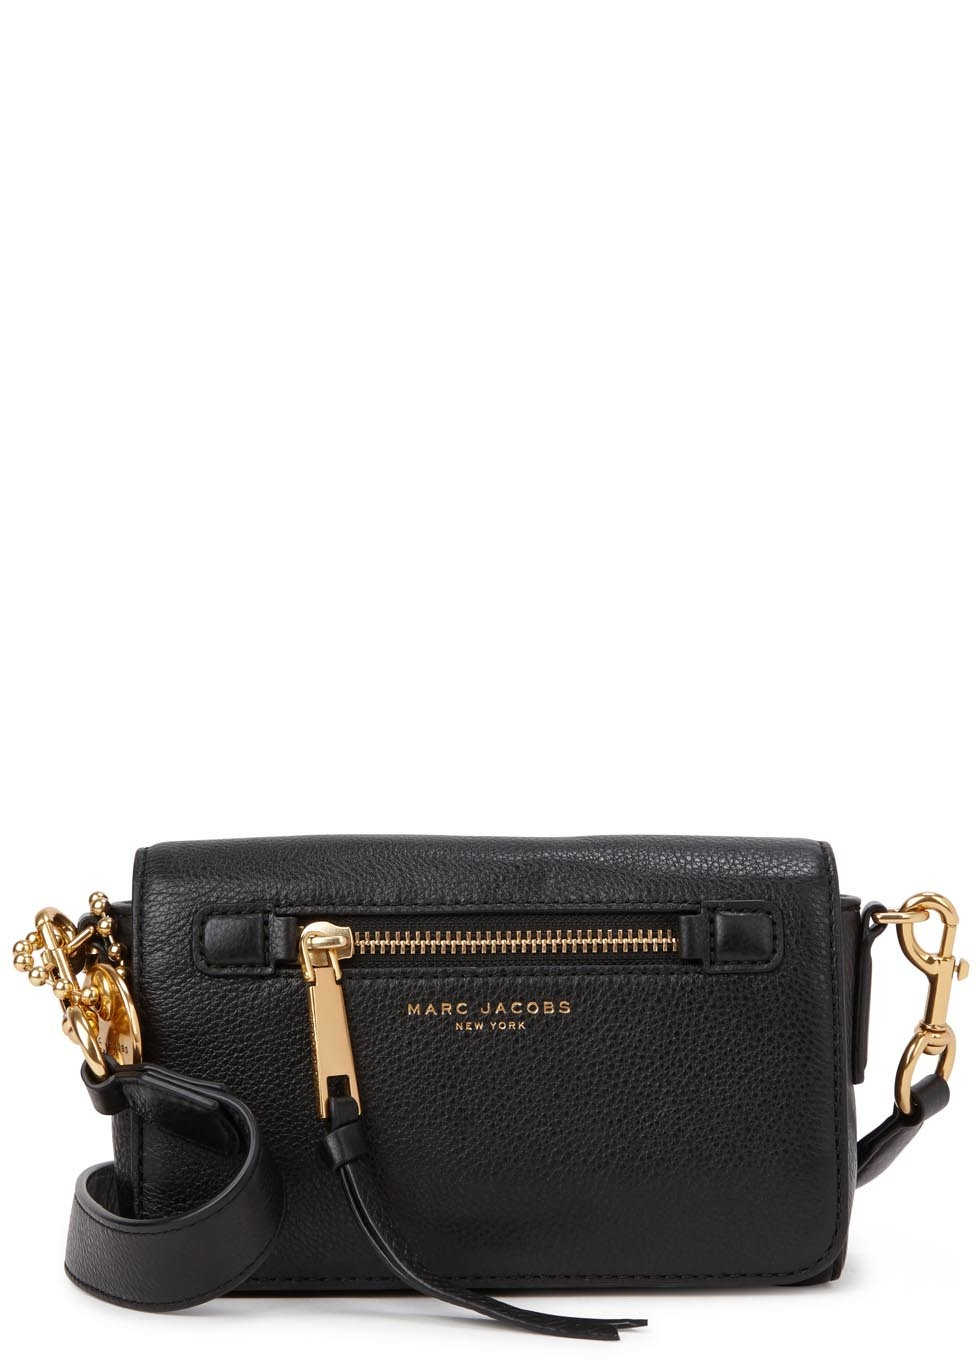 Recruit Black Leather Cross Body Bag - secondary colour: gold; predominant colour: black; occasions: casual; type of pattern: standard; style: messenger; length: across body/long; size: small; material: leather; pattern: plain; finish: plain; season: s/s 2016; wardrobe: basic